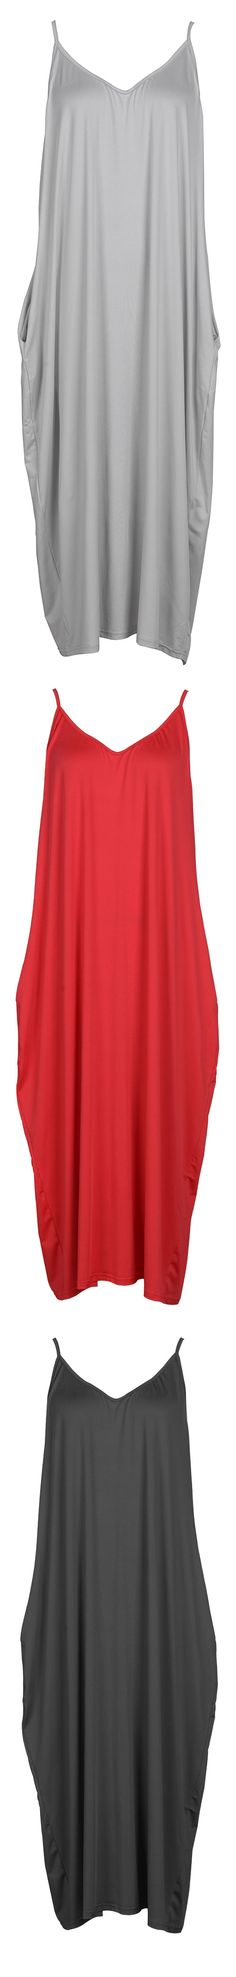 Dazzle and shine in this stylish dress. This dress is so flattering with that fit and flare spaghetti straps but the whole look is what it is! Big Love to it.